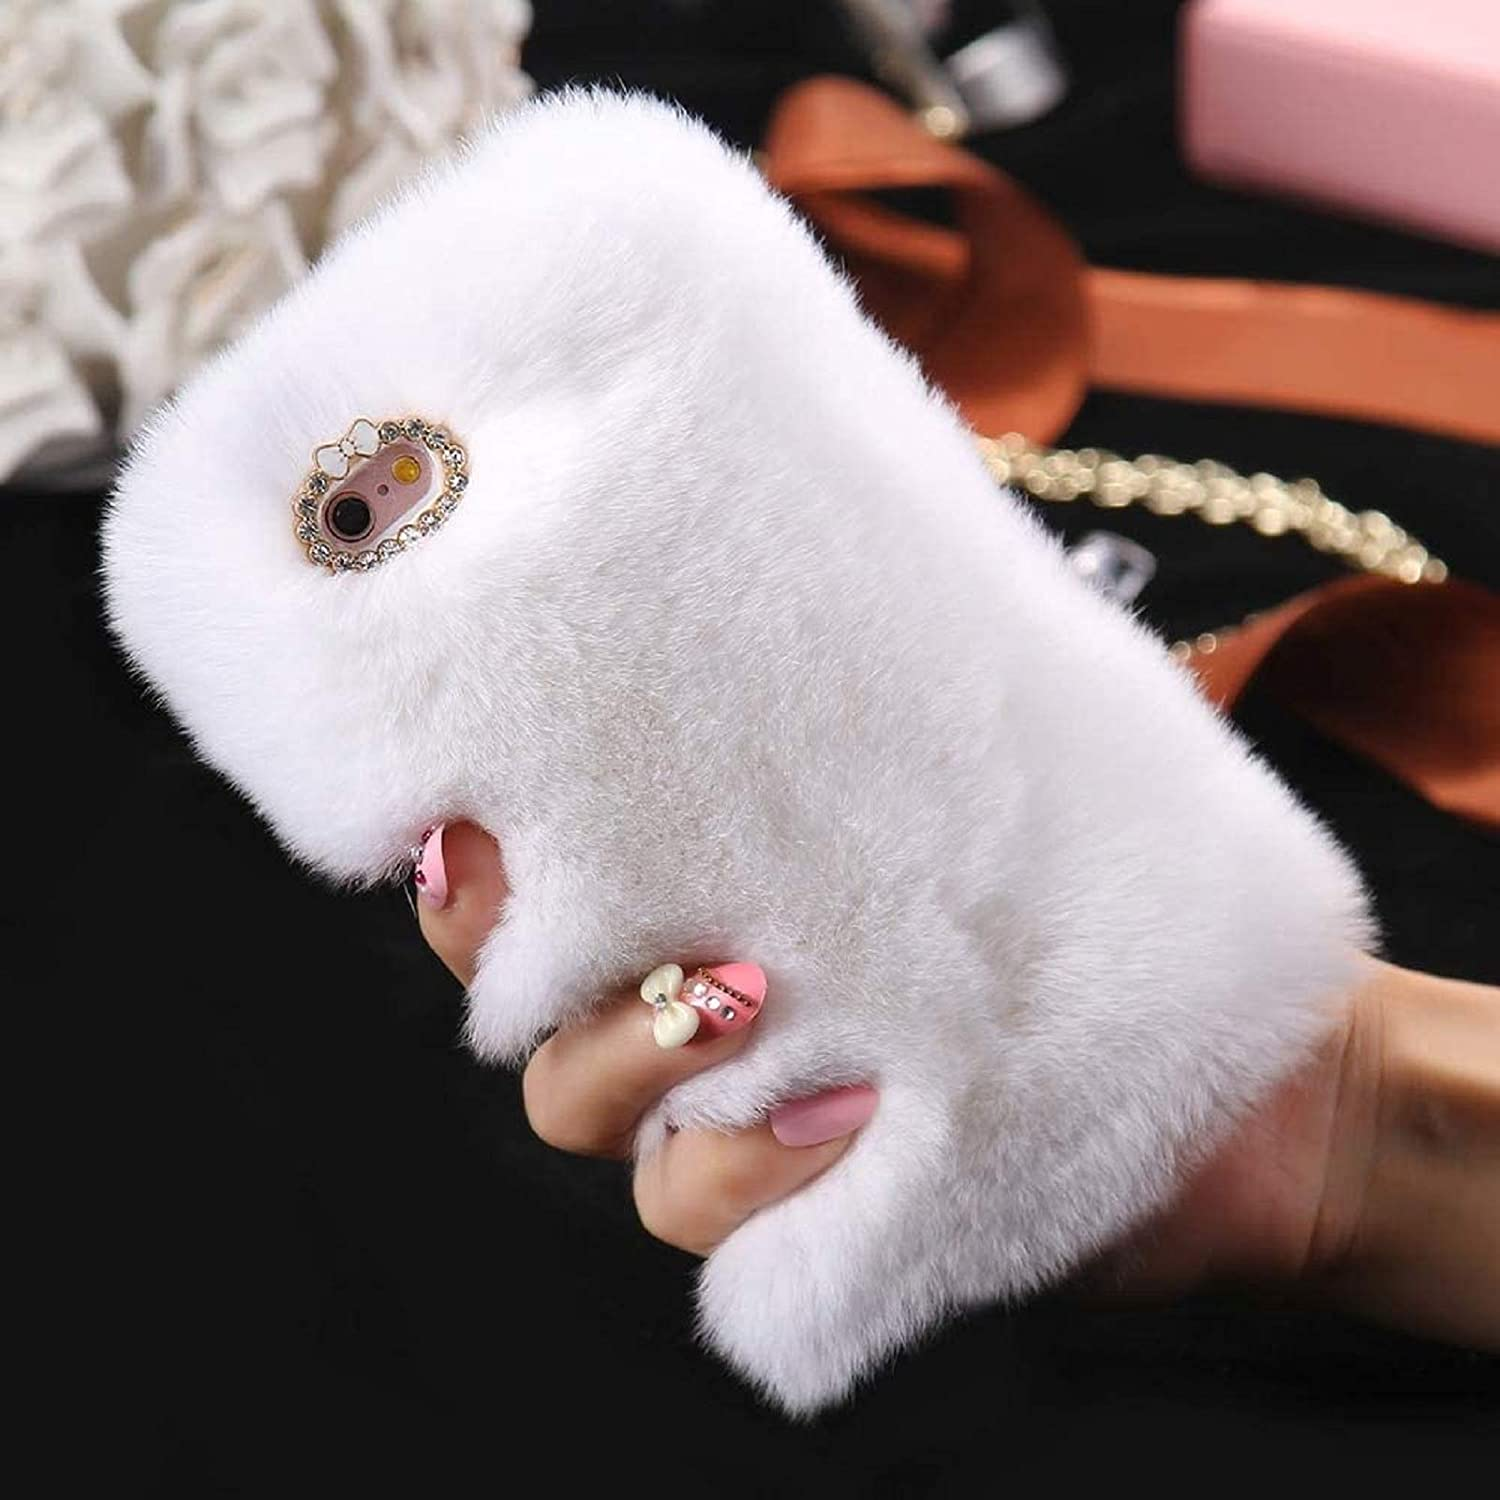 Outlet SALE Cfrau Furry Case with Black Stylus Warmed 6 5 ☆ popular for Winter Stylo LG